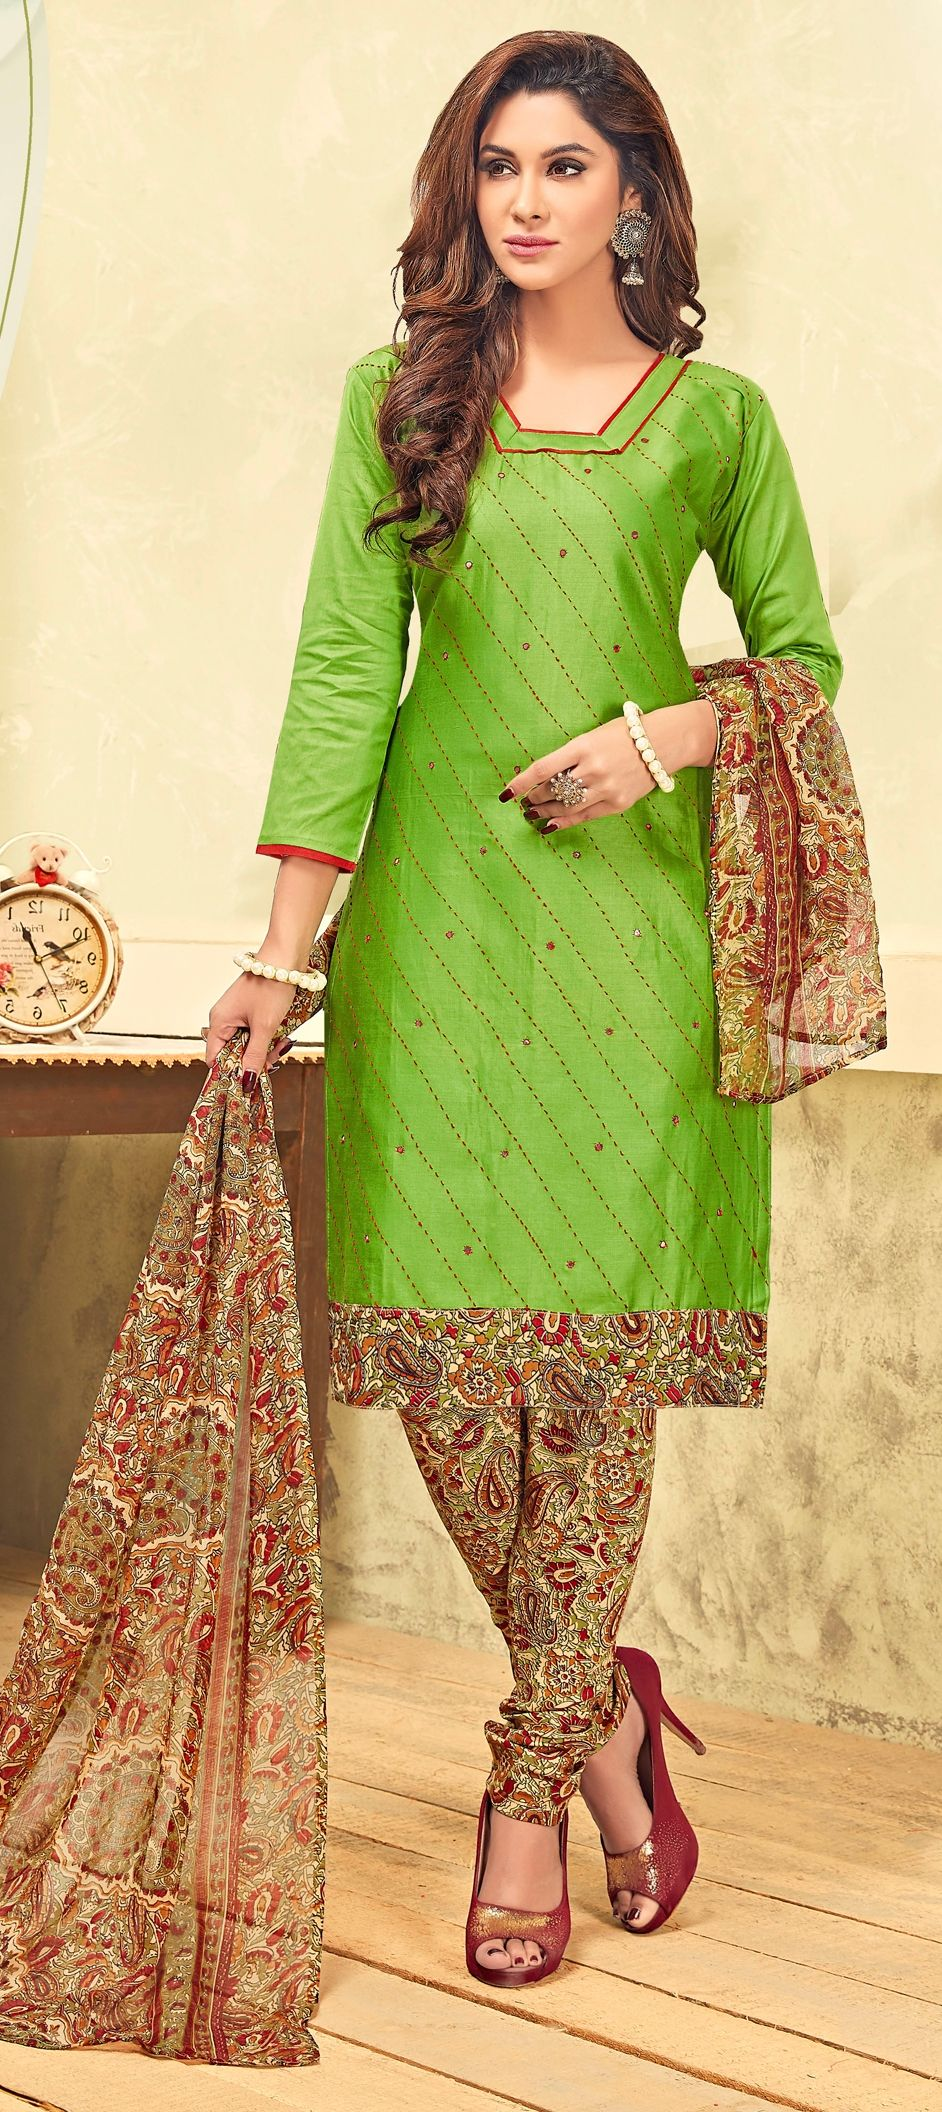 a26e9a3d2c 903201: Green color family unstitched Cotton Salwar Kameez, Party ...